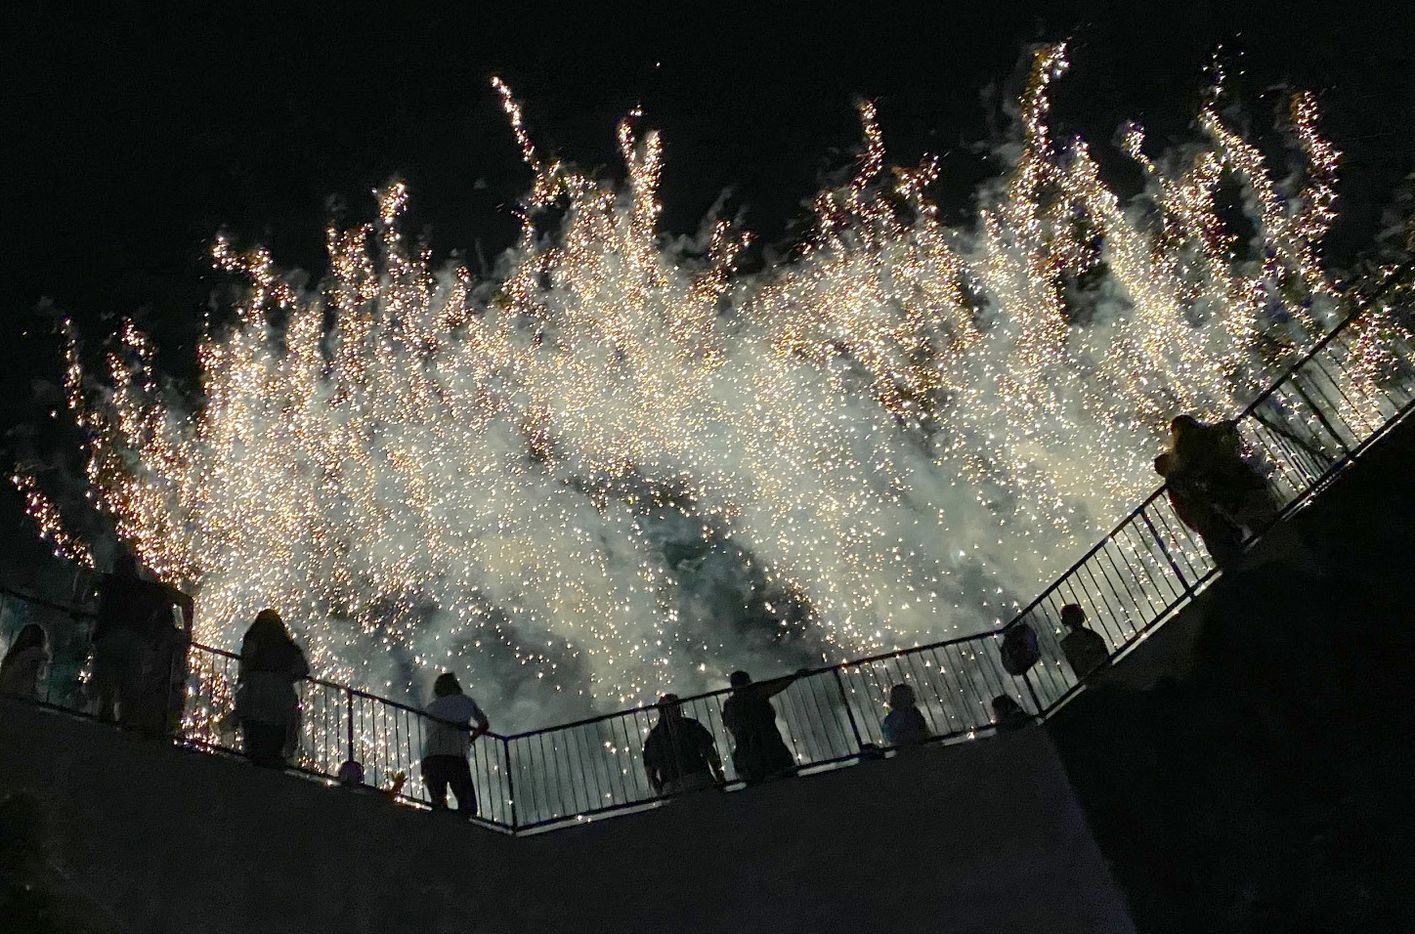 FC Dallas fans enjoyed a post-match fireworks show following a 1-1 draw between FC Dallas and Minnesota United. The two teams played their MLS match at Toyota Stadium in Frisco on June 19, 2021. (Steve Hamm/ Special Contributor)